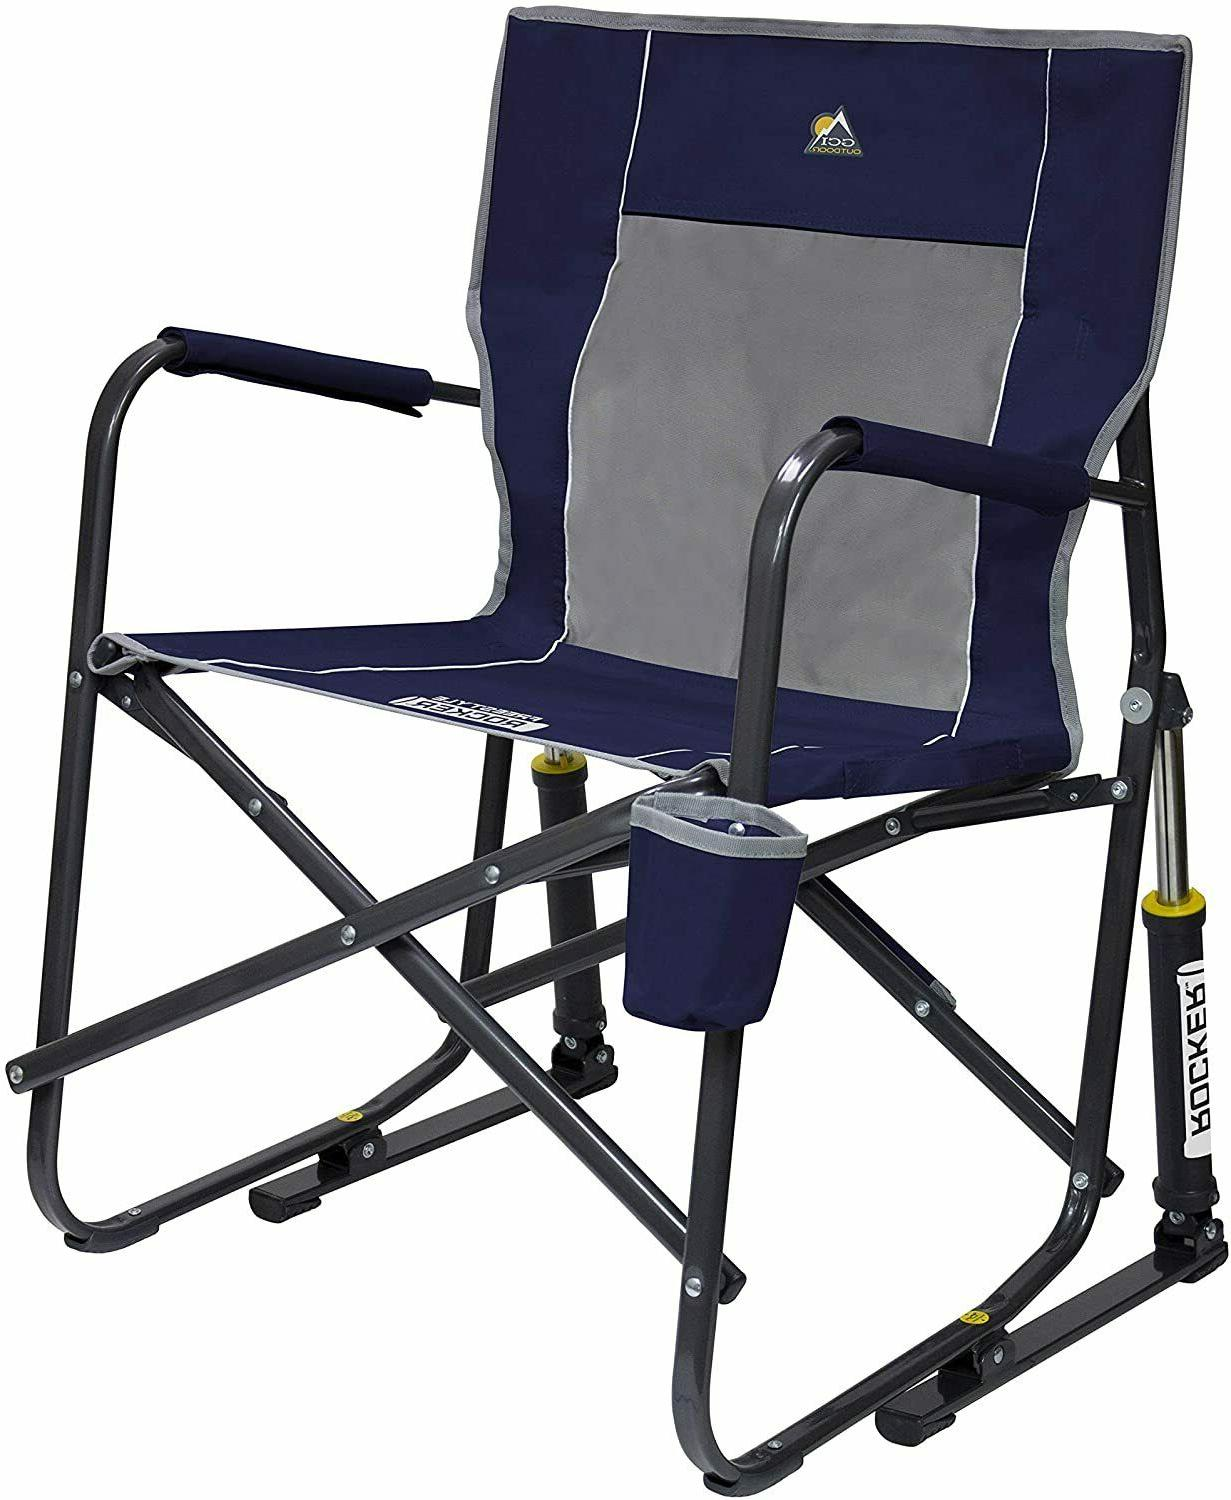 Portable Folding Rocking Chair lightweight Freestyle camping